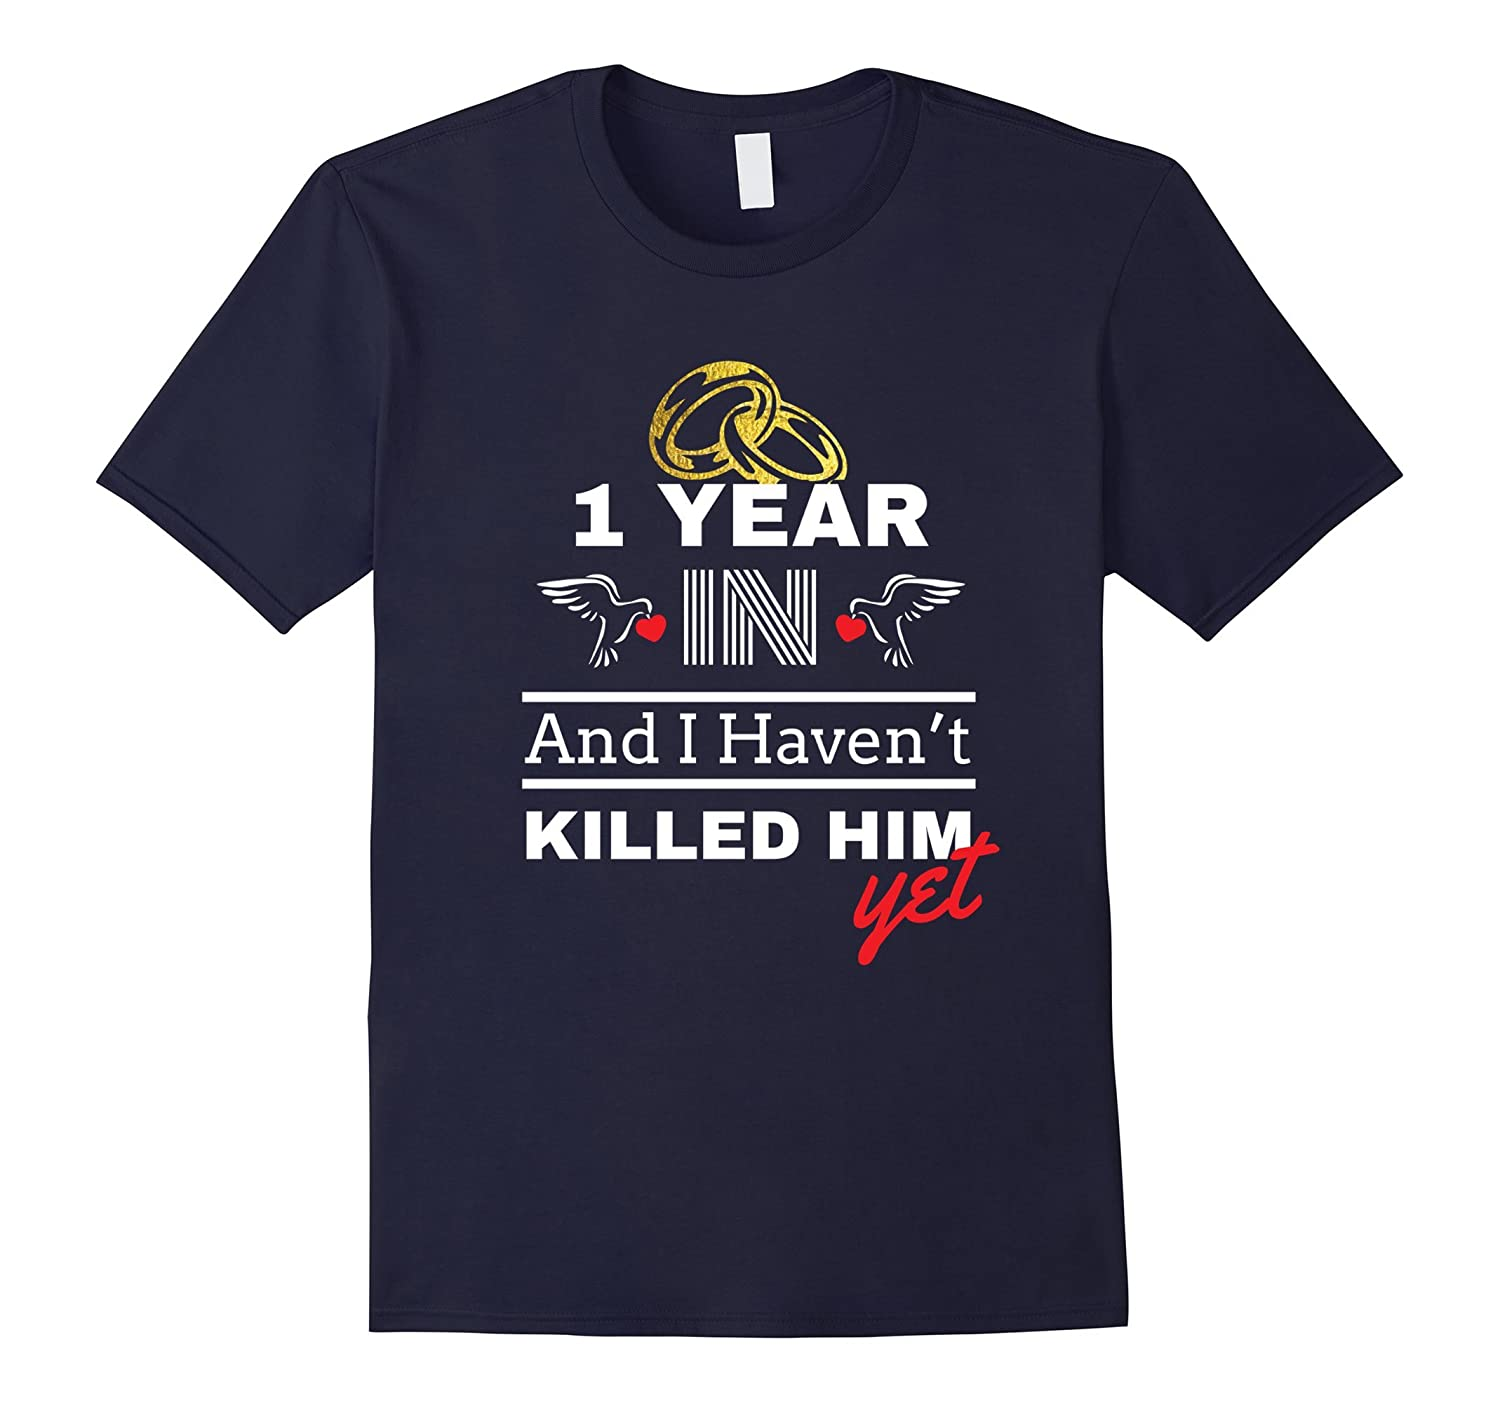 1st Year Anniversary Gift Idea for Her - 1 Year In T Shirt-ah my shirt one gift